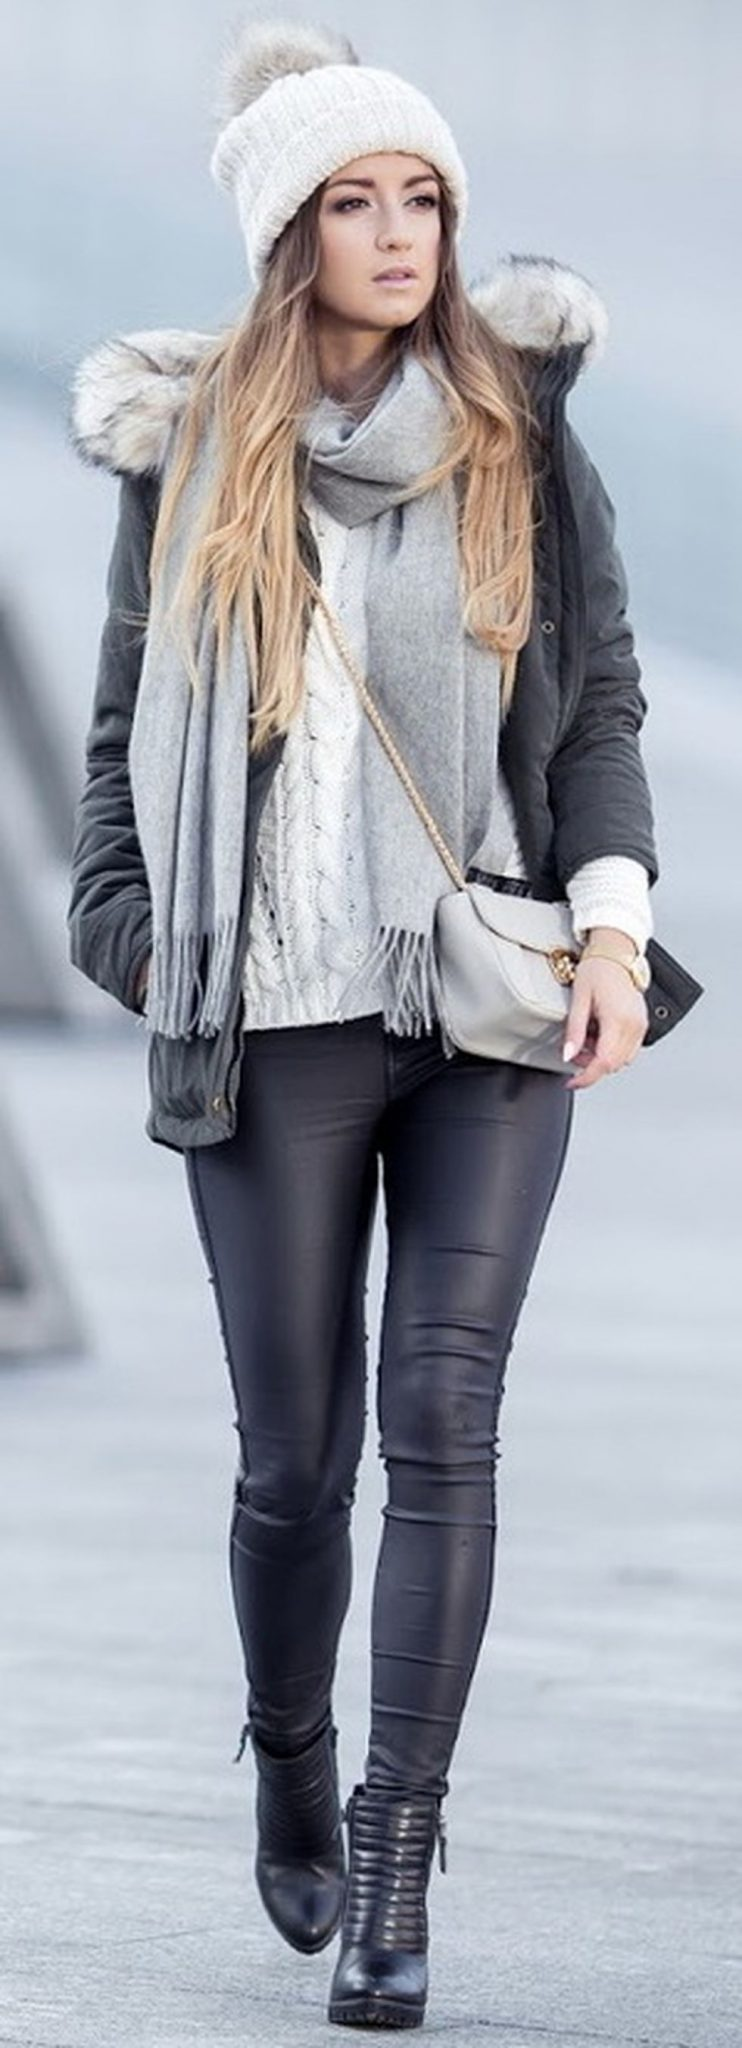 Fashionable women hats for winter and snow outfits 8